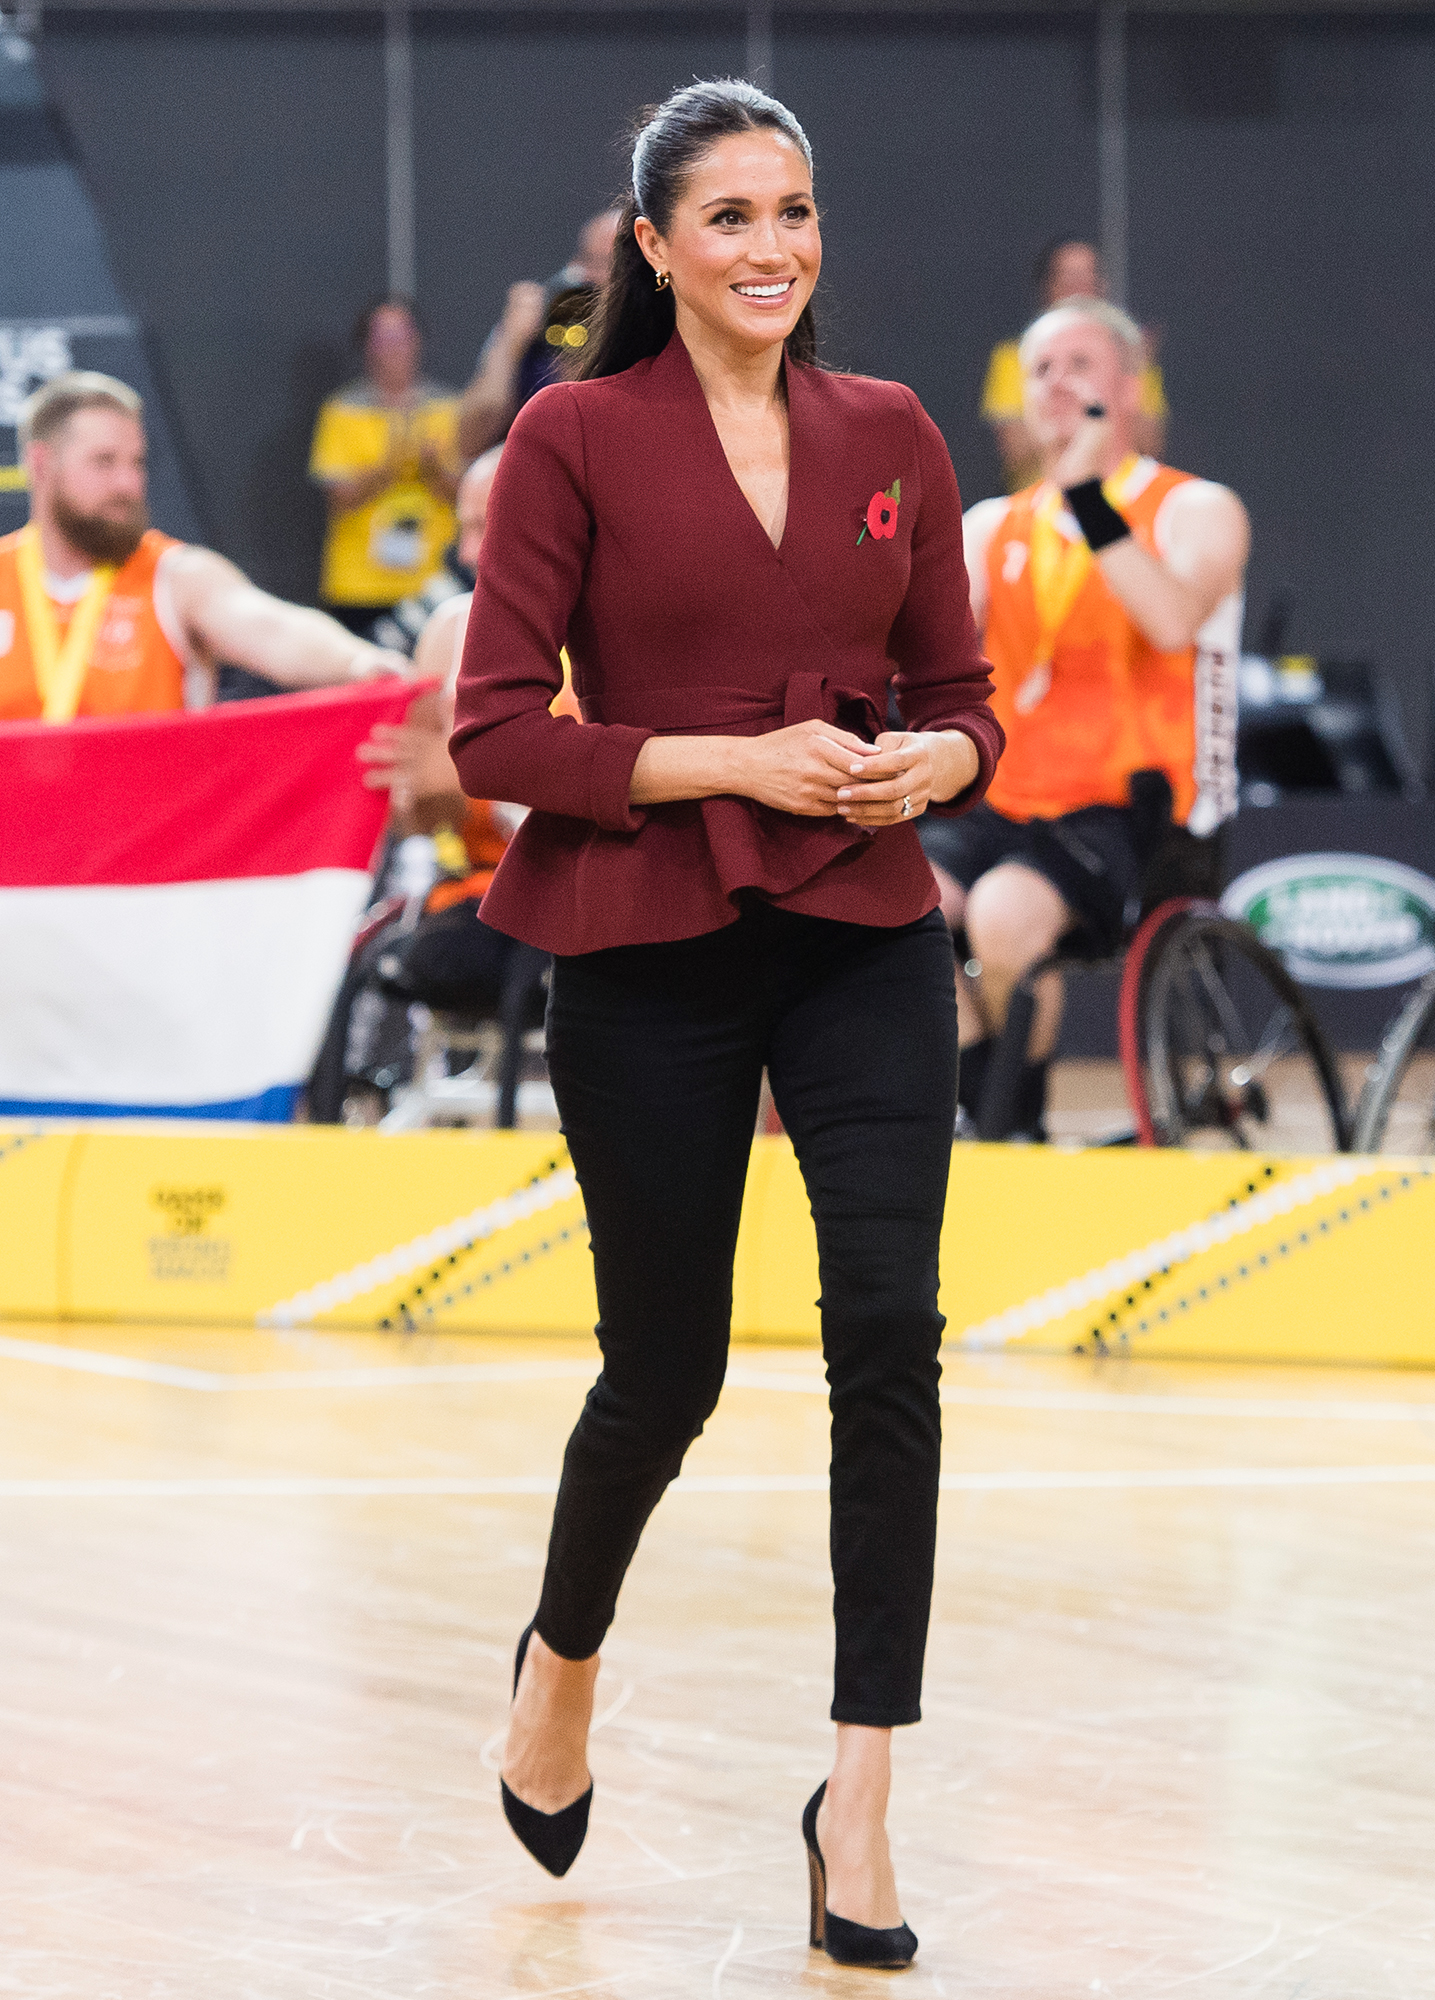 """Everything Duchess Meghan Has Said About Her Diet and Fitness Tricks - """"There was an old episode of The Cosby Show where Clair Huxtable was trying to lose weight and feel great to fit into a dress,"""" Meghan (at the Invictus Games in Sydney on October 27, 2018) once told Us . """"Debbie Allen is her trainer and she literally says, """"You've got to burn it, to earn it."""